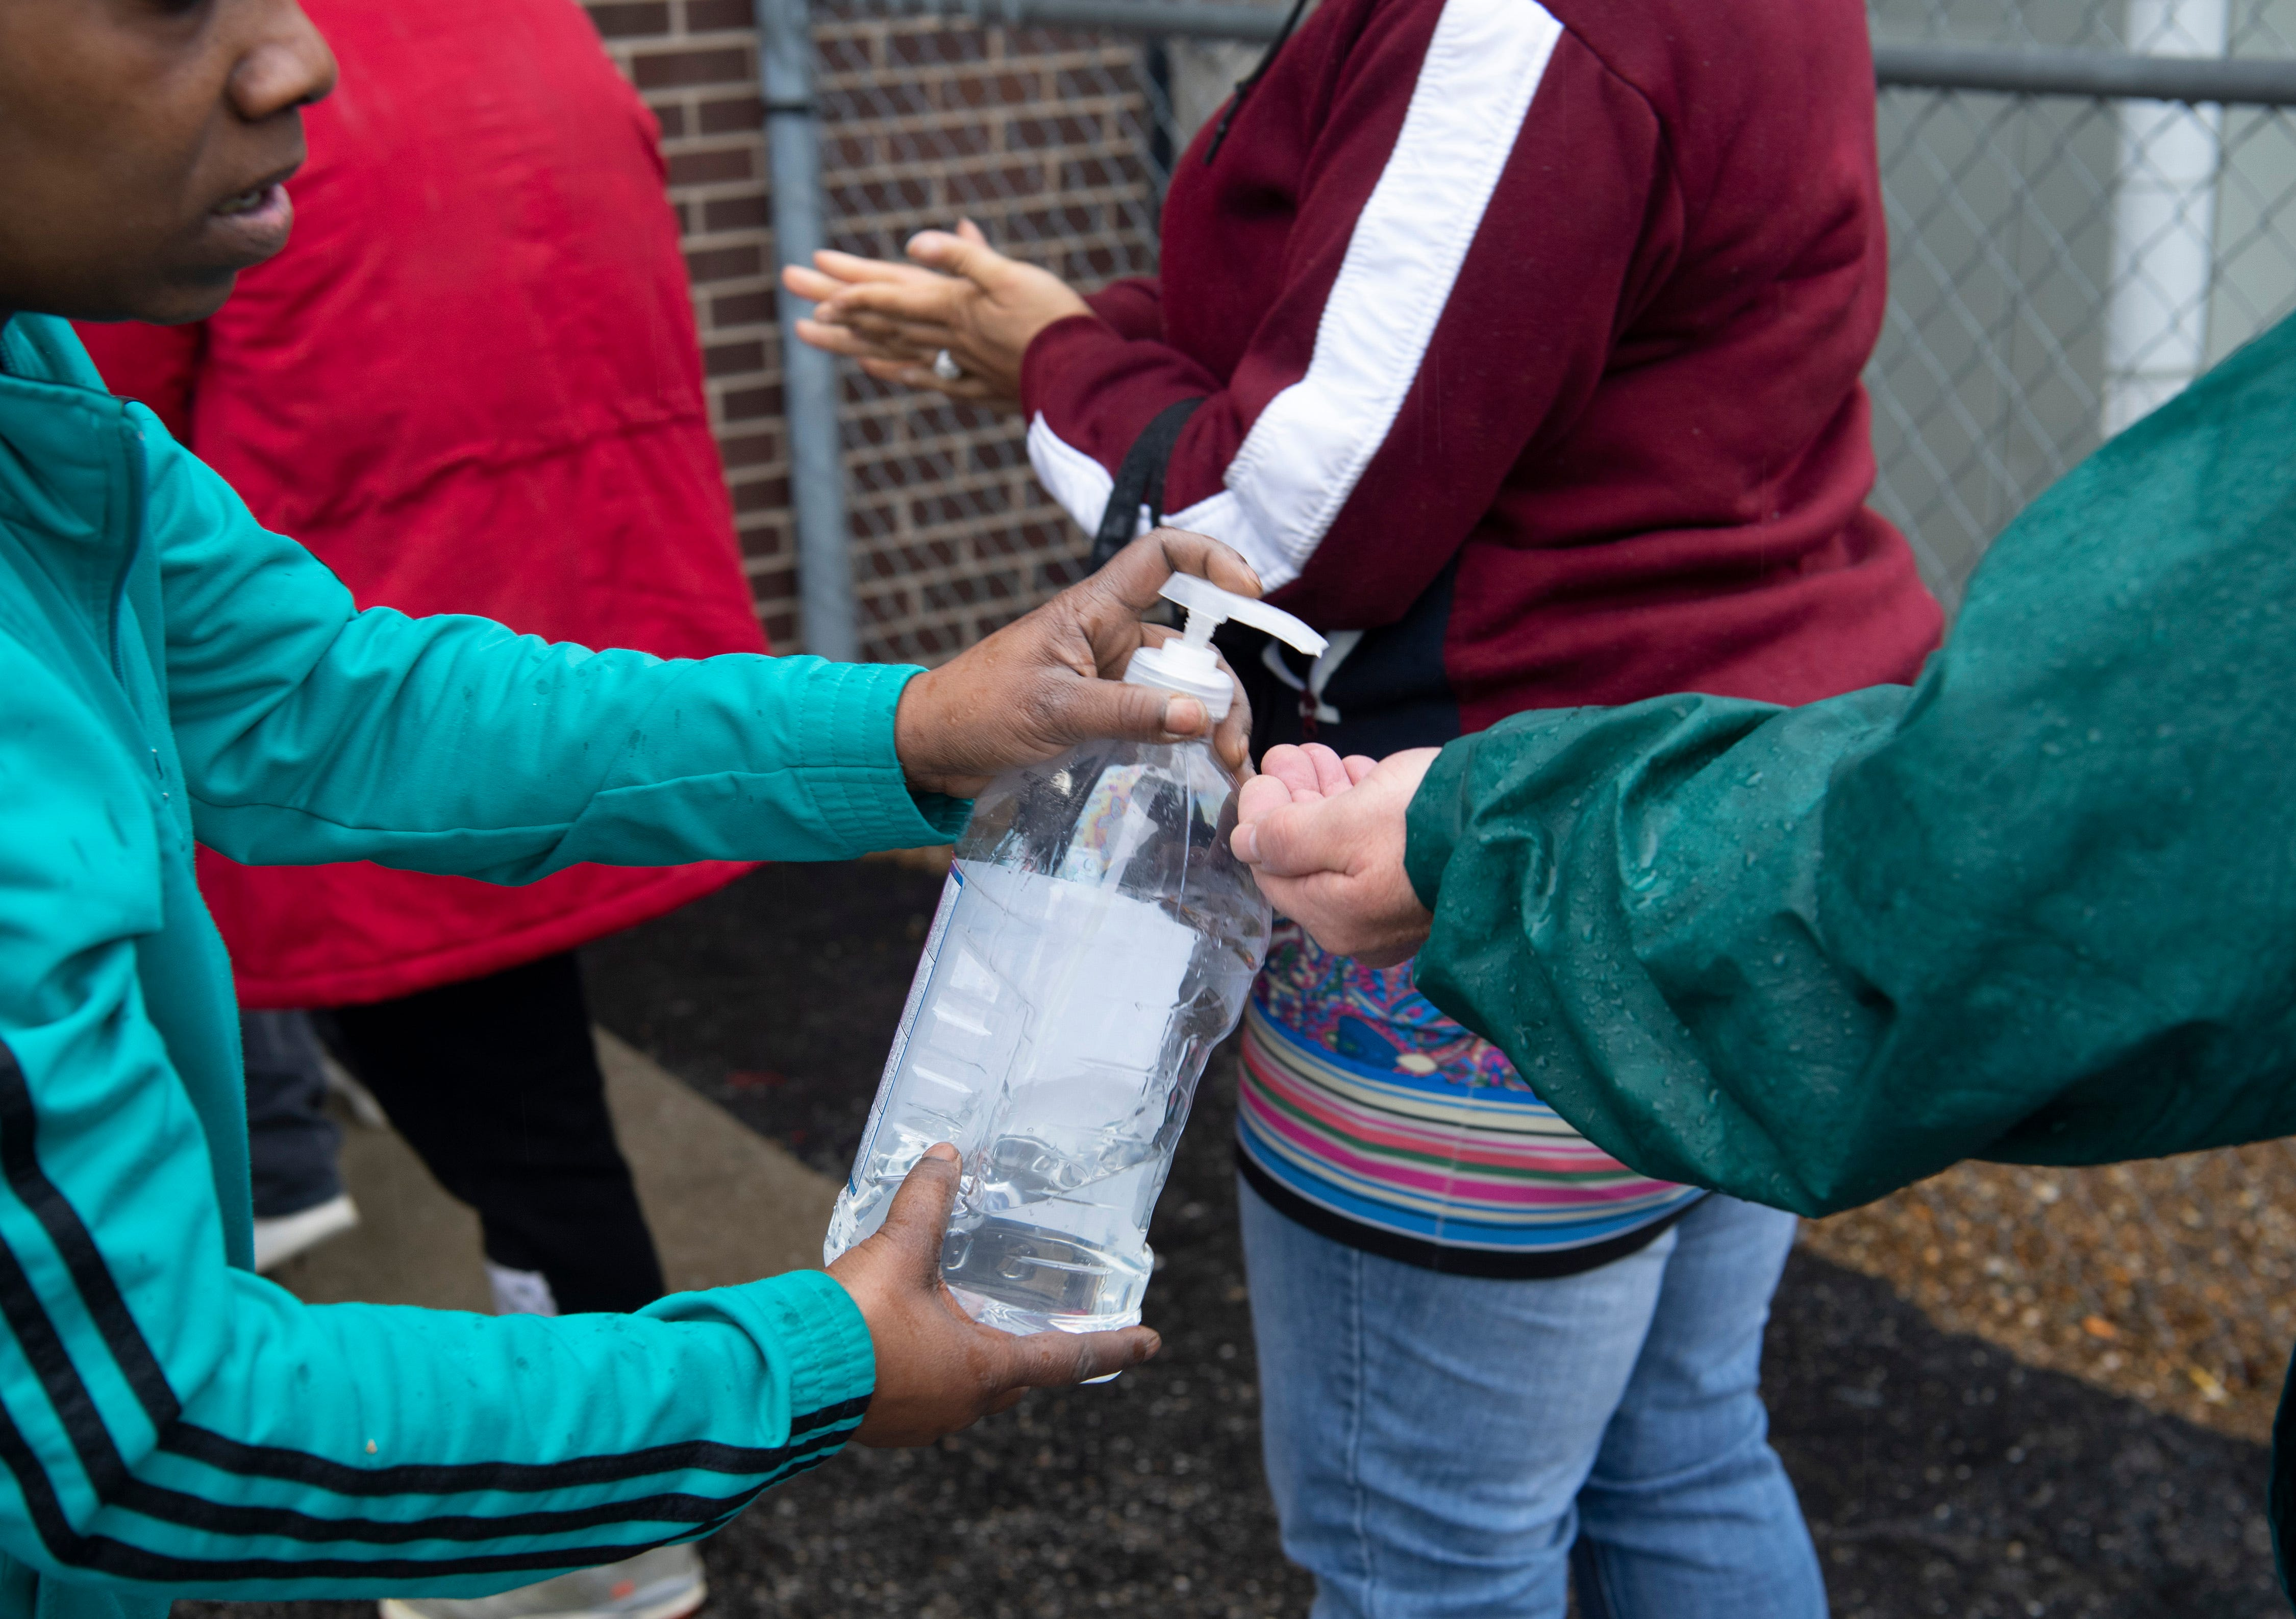 Even as the coronavirus pandemic brought out some of Americans' deepest fears, it also summoned their better angels. In Evansville, Ind., Lashawn Miles offers squirts of hand sanitizer to people who gathered for Salvation Army lunch program March 18.